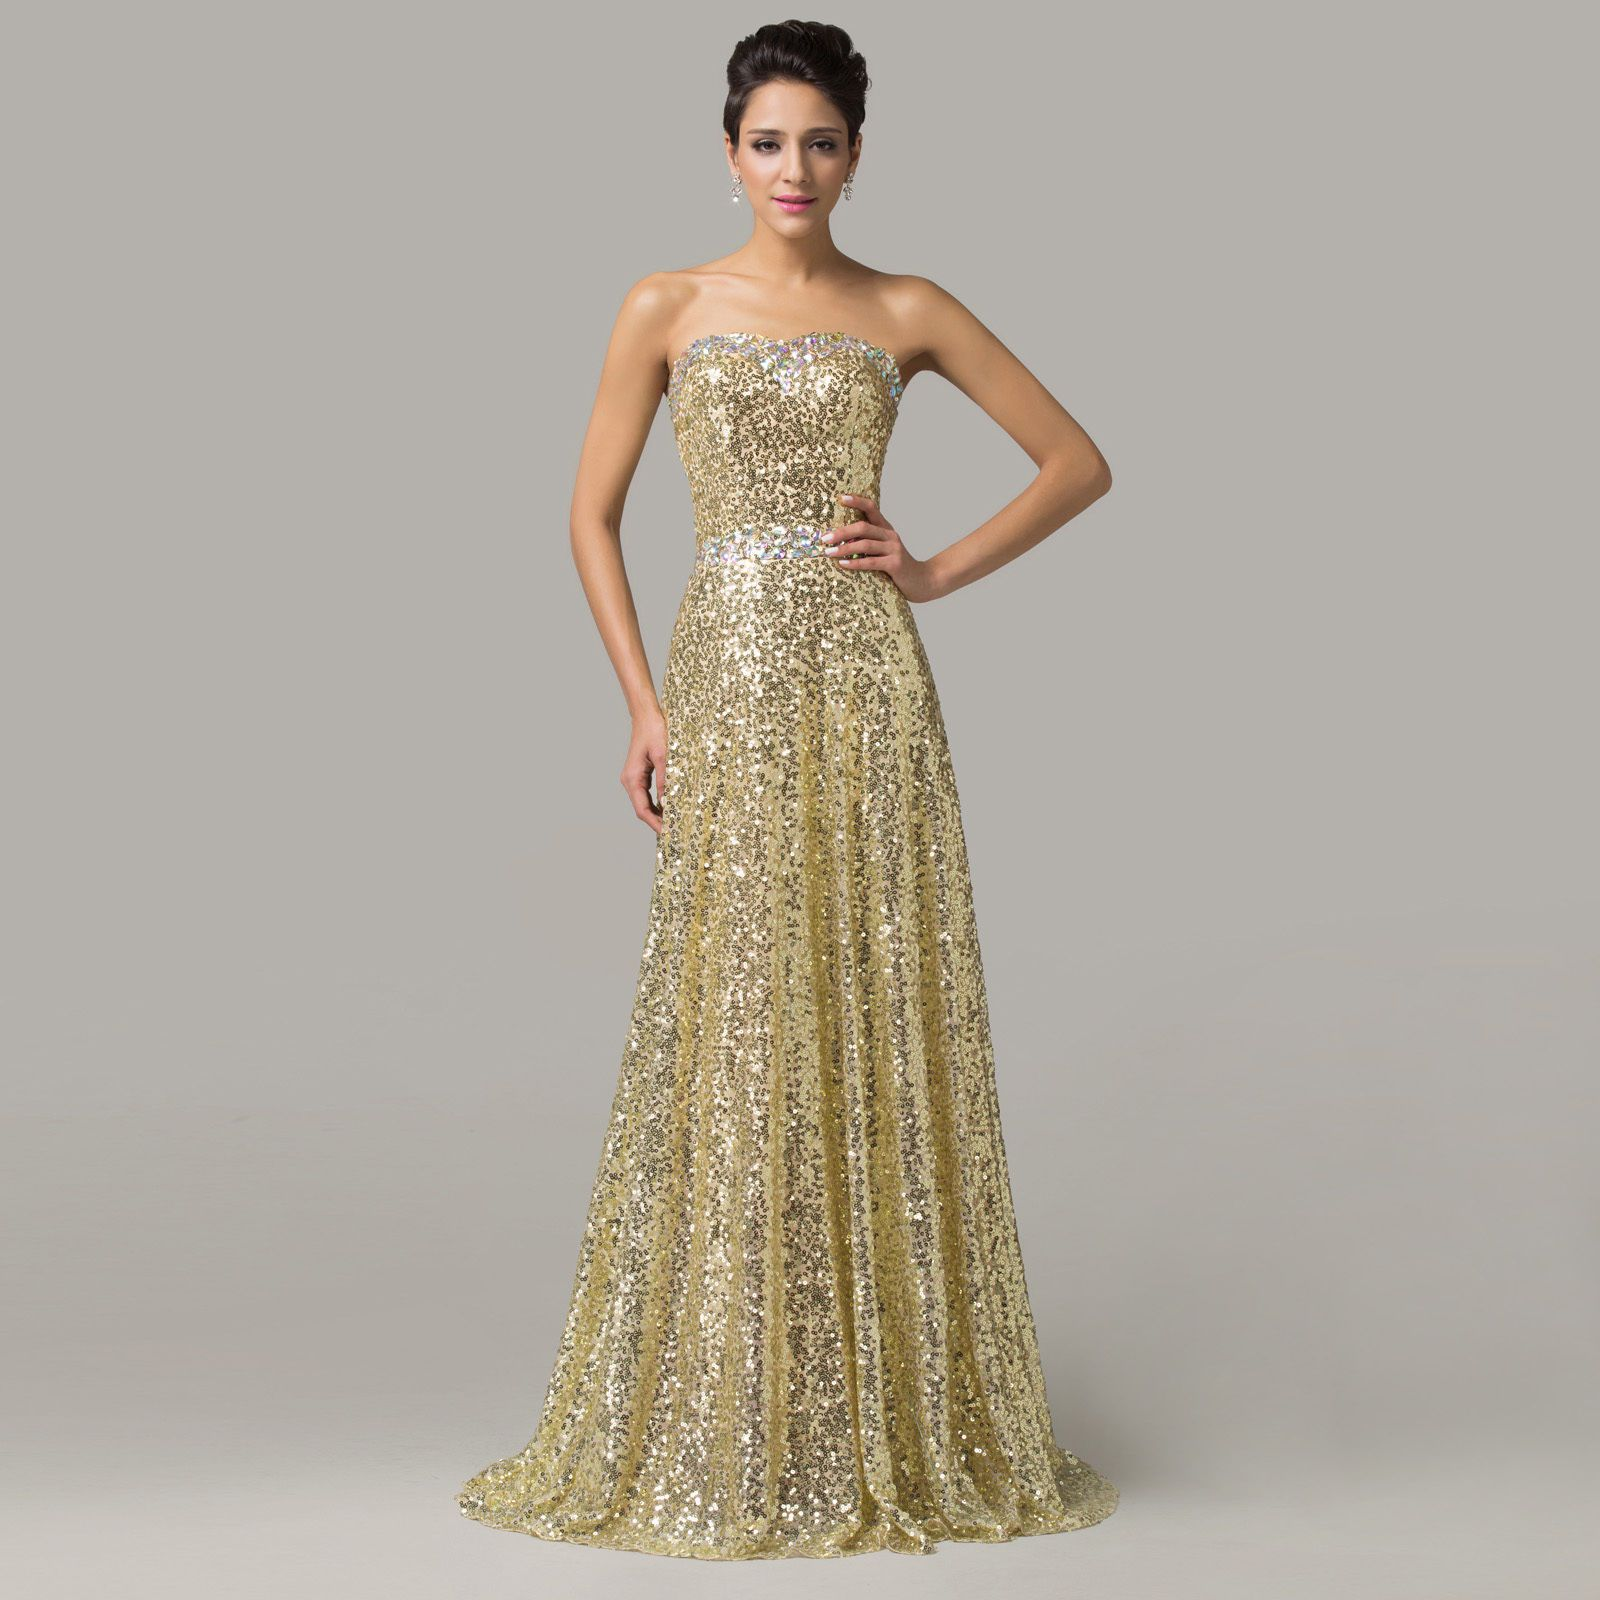 Glitter gold sequins ball gown evening bridemaid prom cocktail party